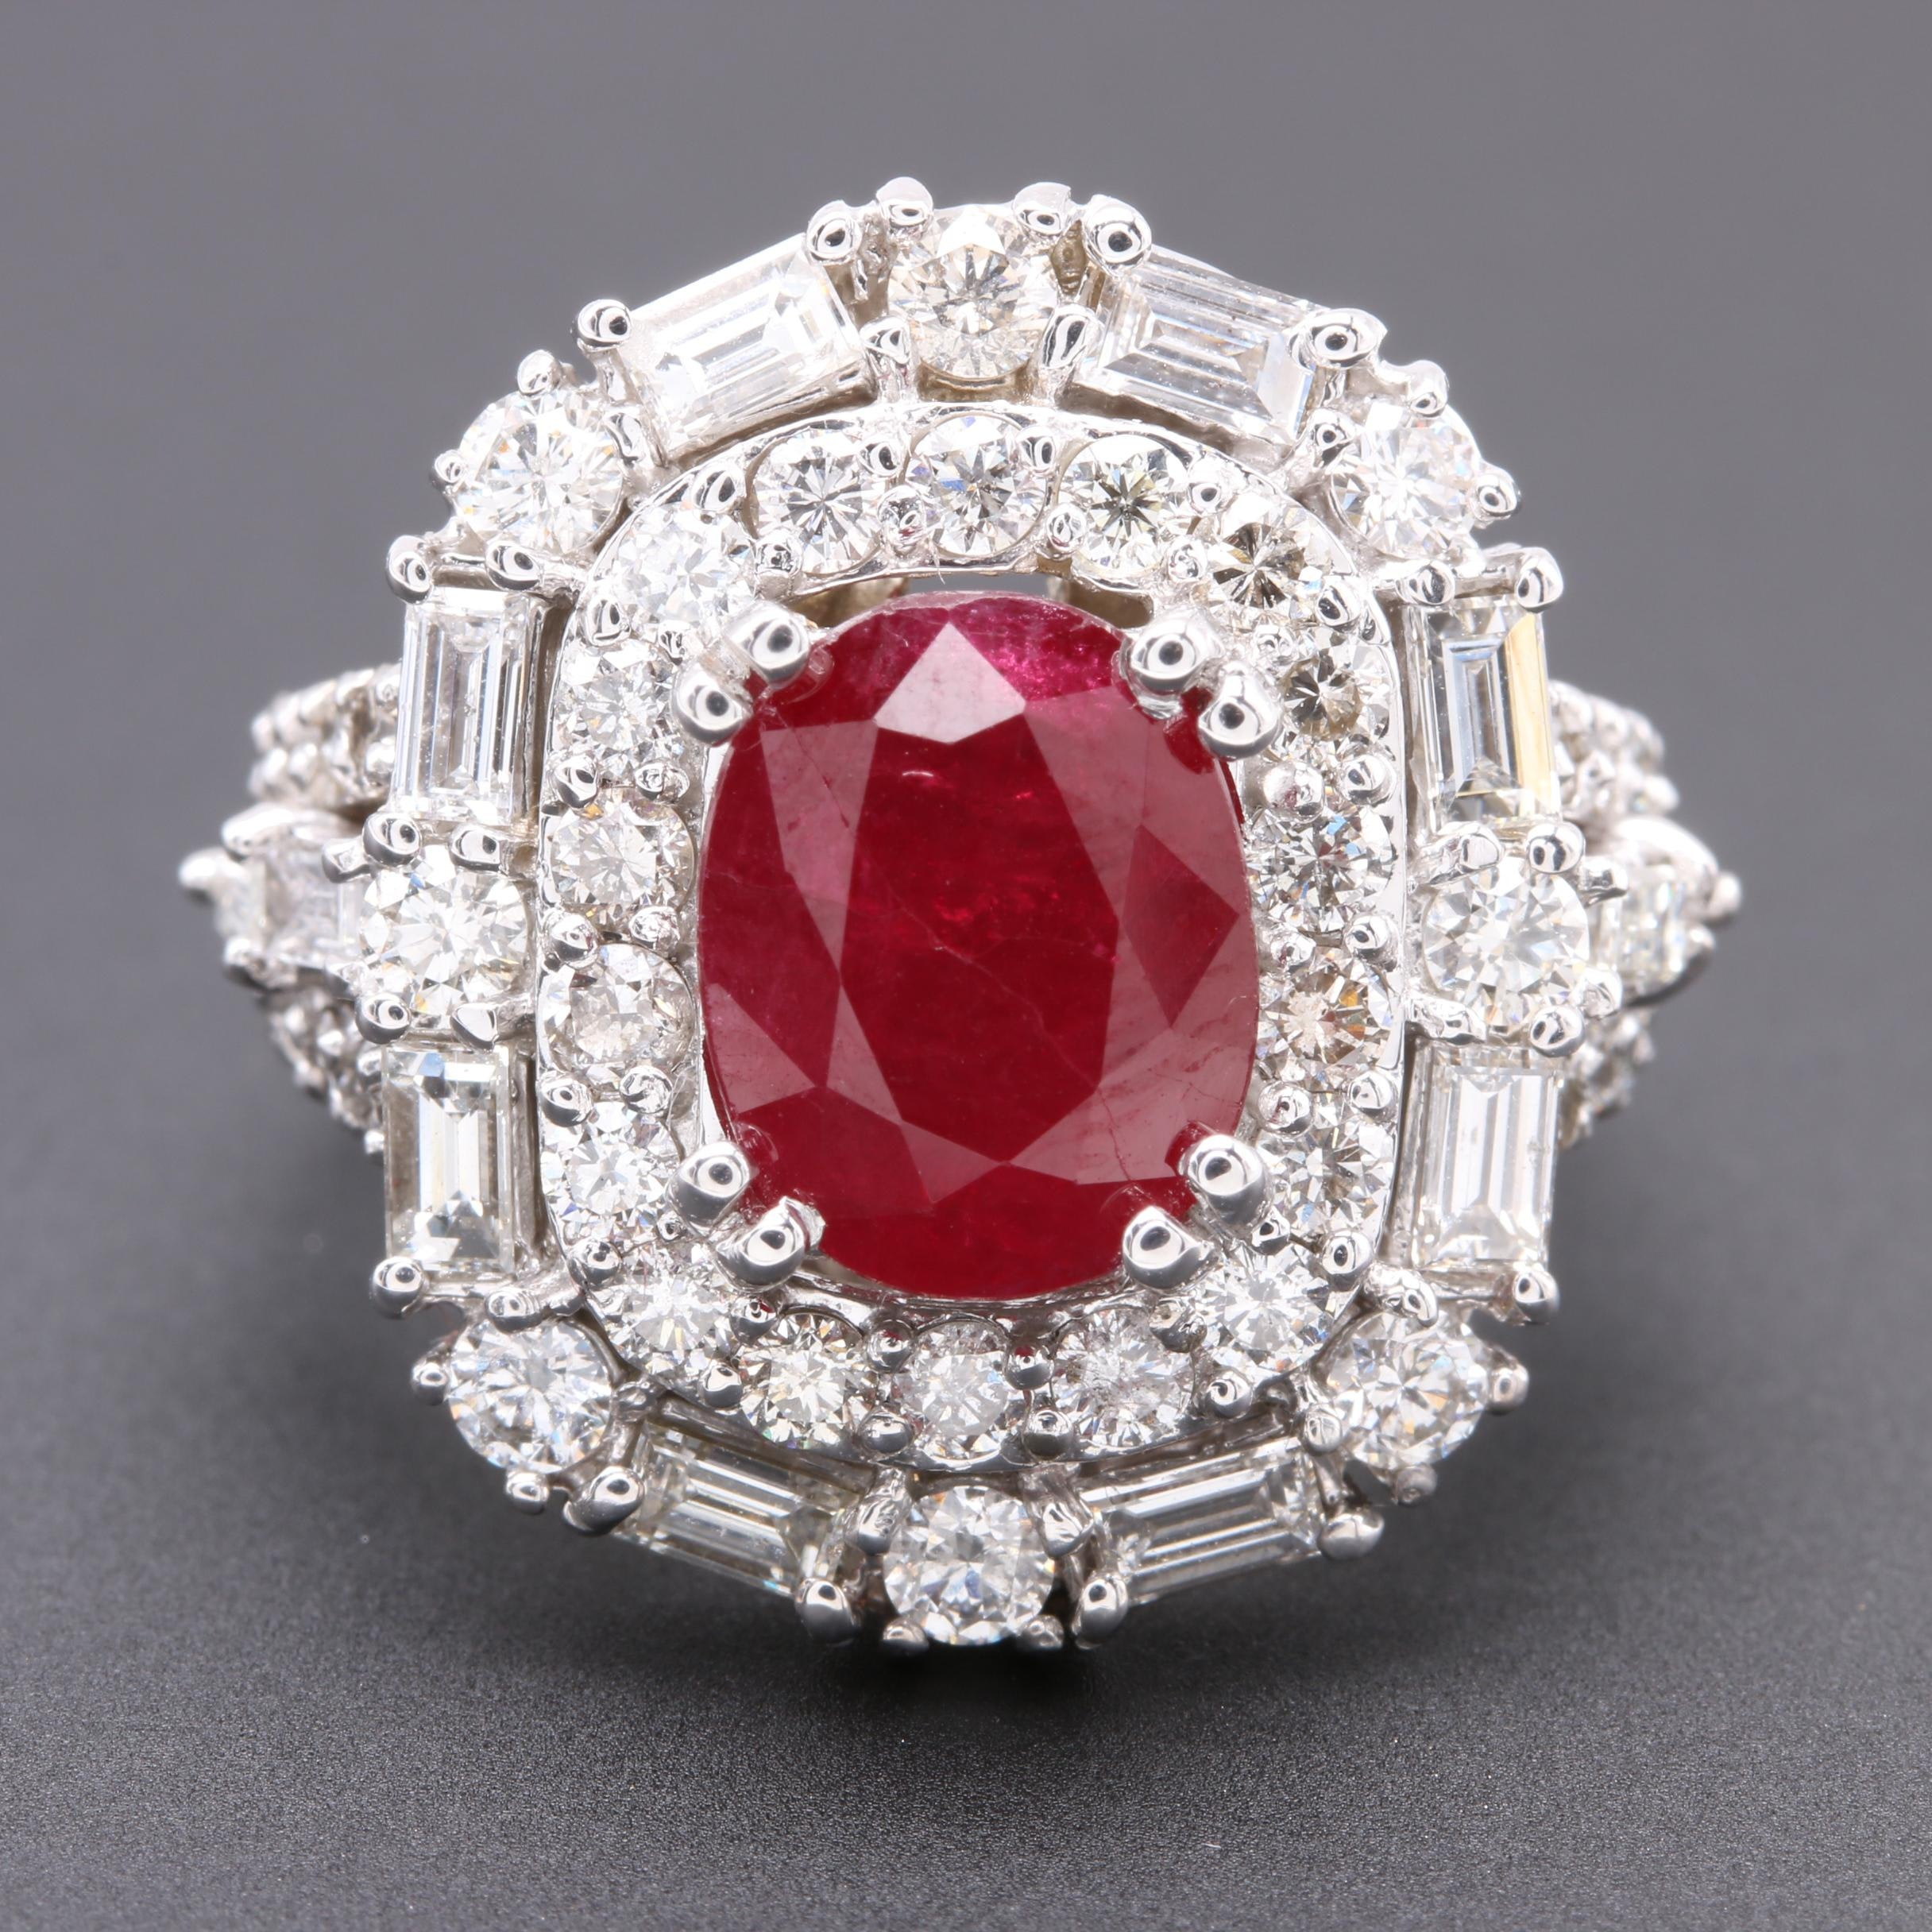 14K White Gold 2.39 CT Ruby and 2.97 CTW Diamond Ring